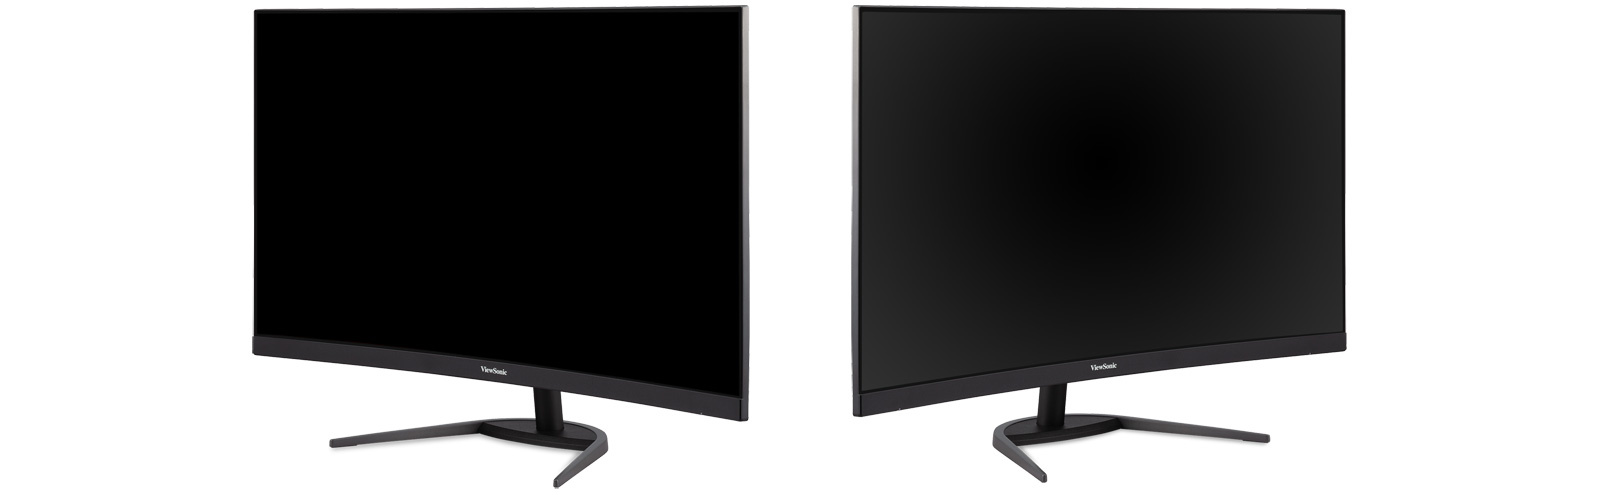 ViewSonic VX3268-2KPC-mhd and ViewSonic VX3268-PC-mhd are released to the market